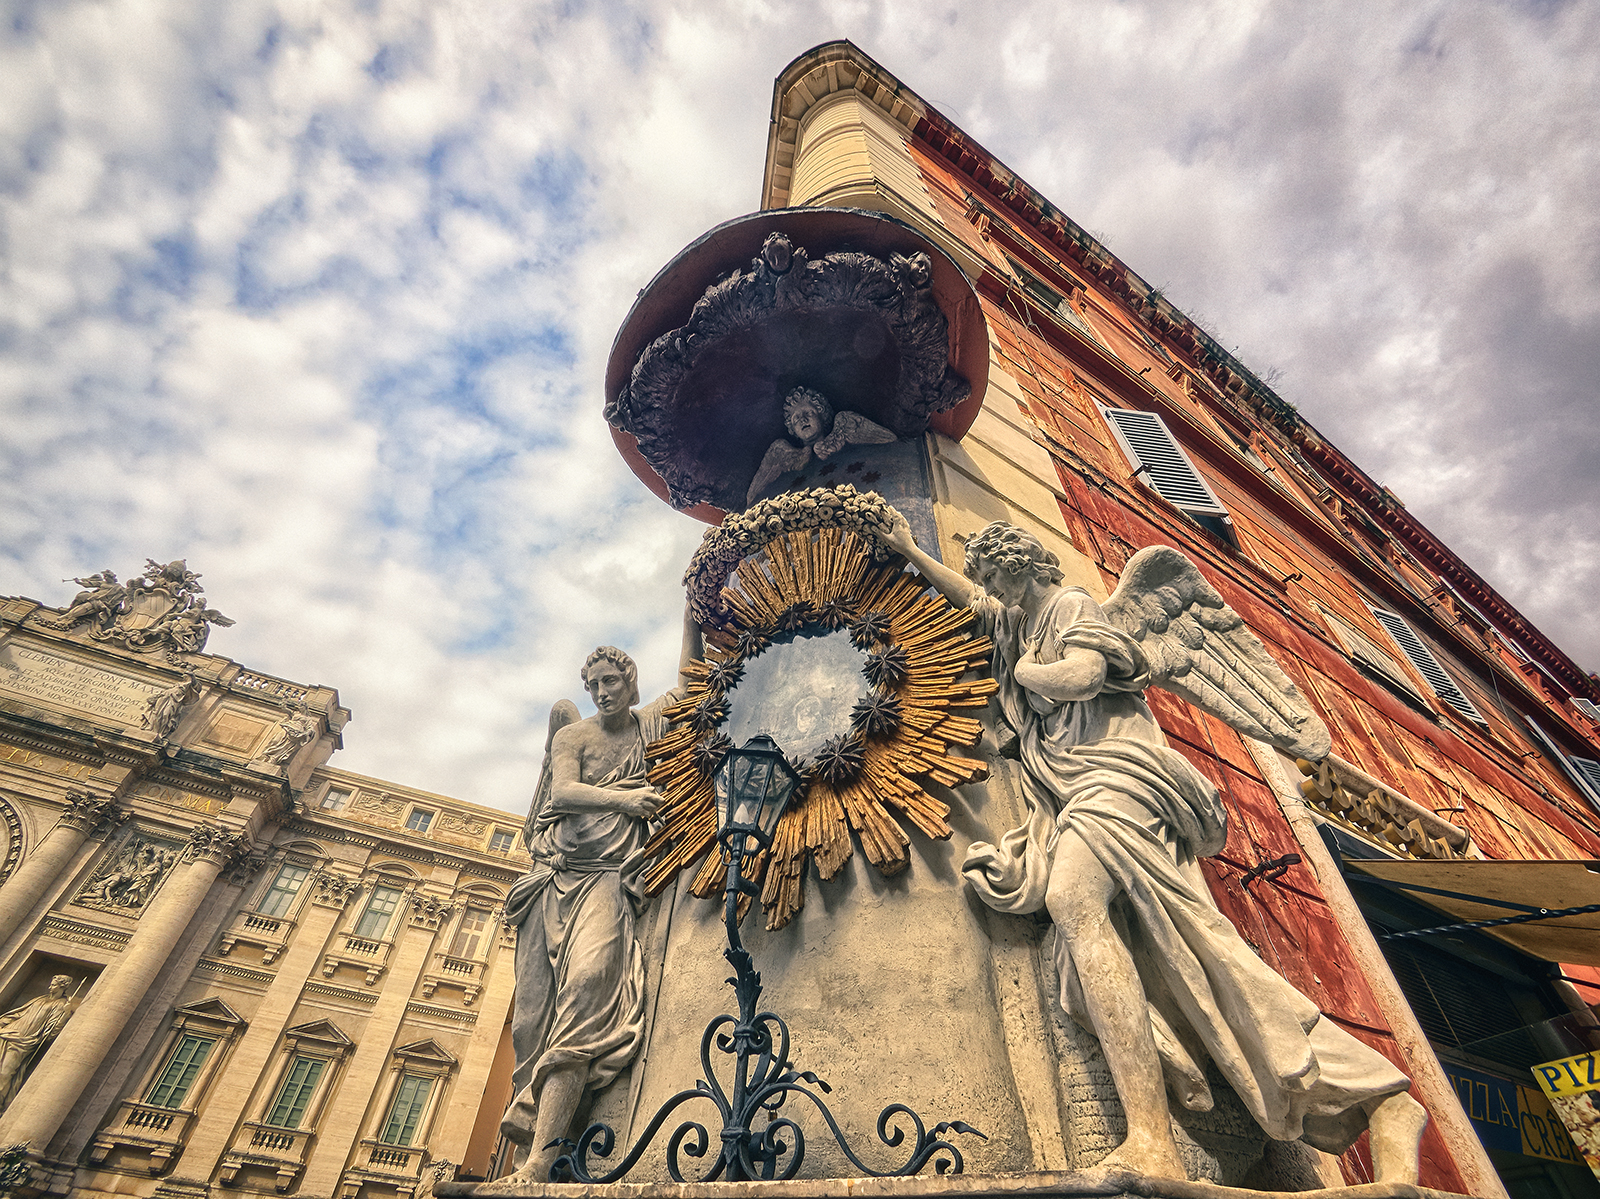 Sculptures by Trevi Fountain Rome Italy